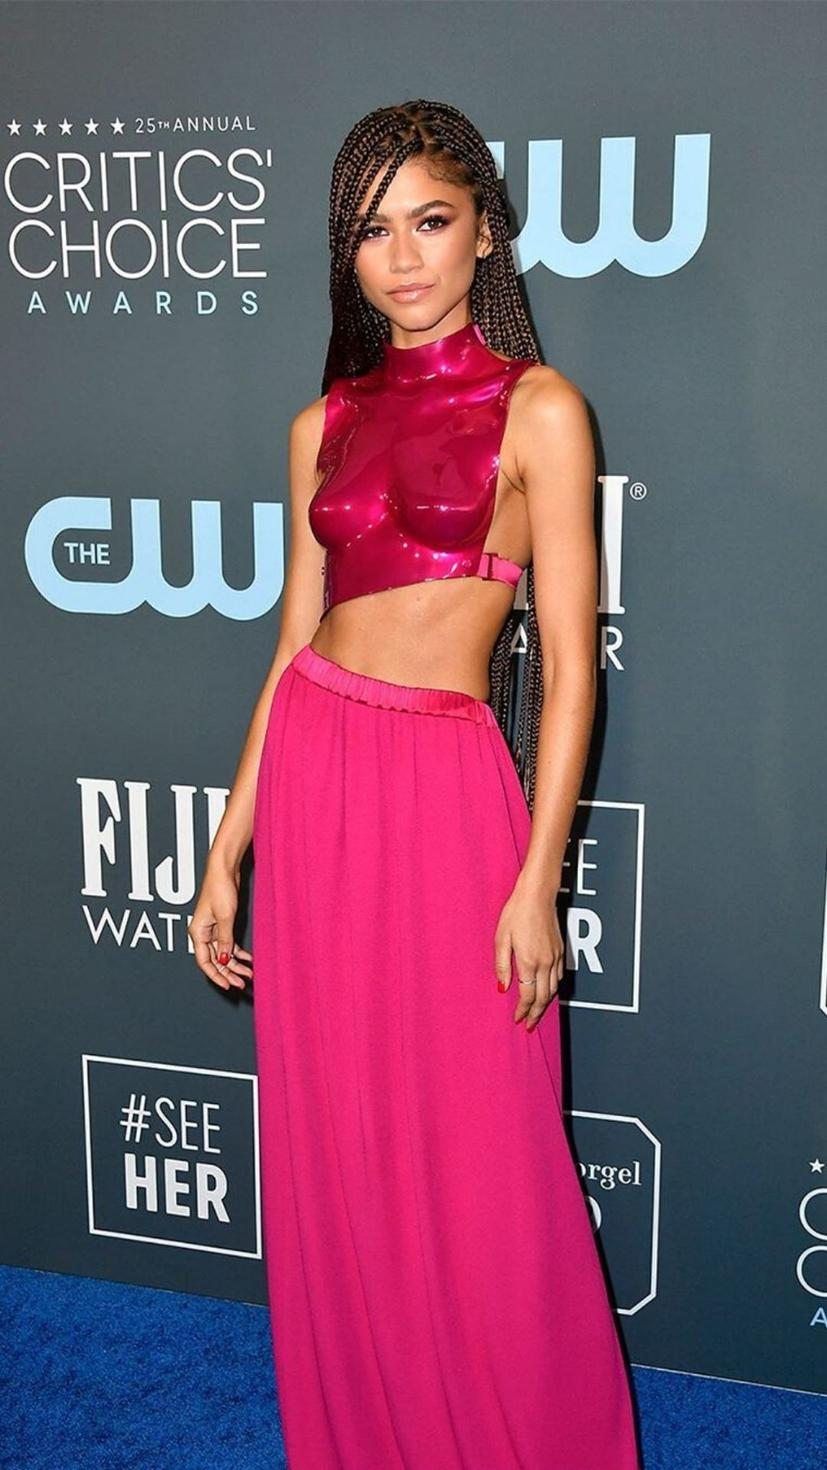 Zendaya wears a Tom Ford hot pink outfit, molded bodice and all.